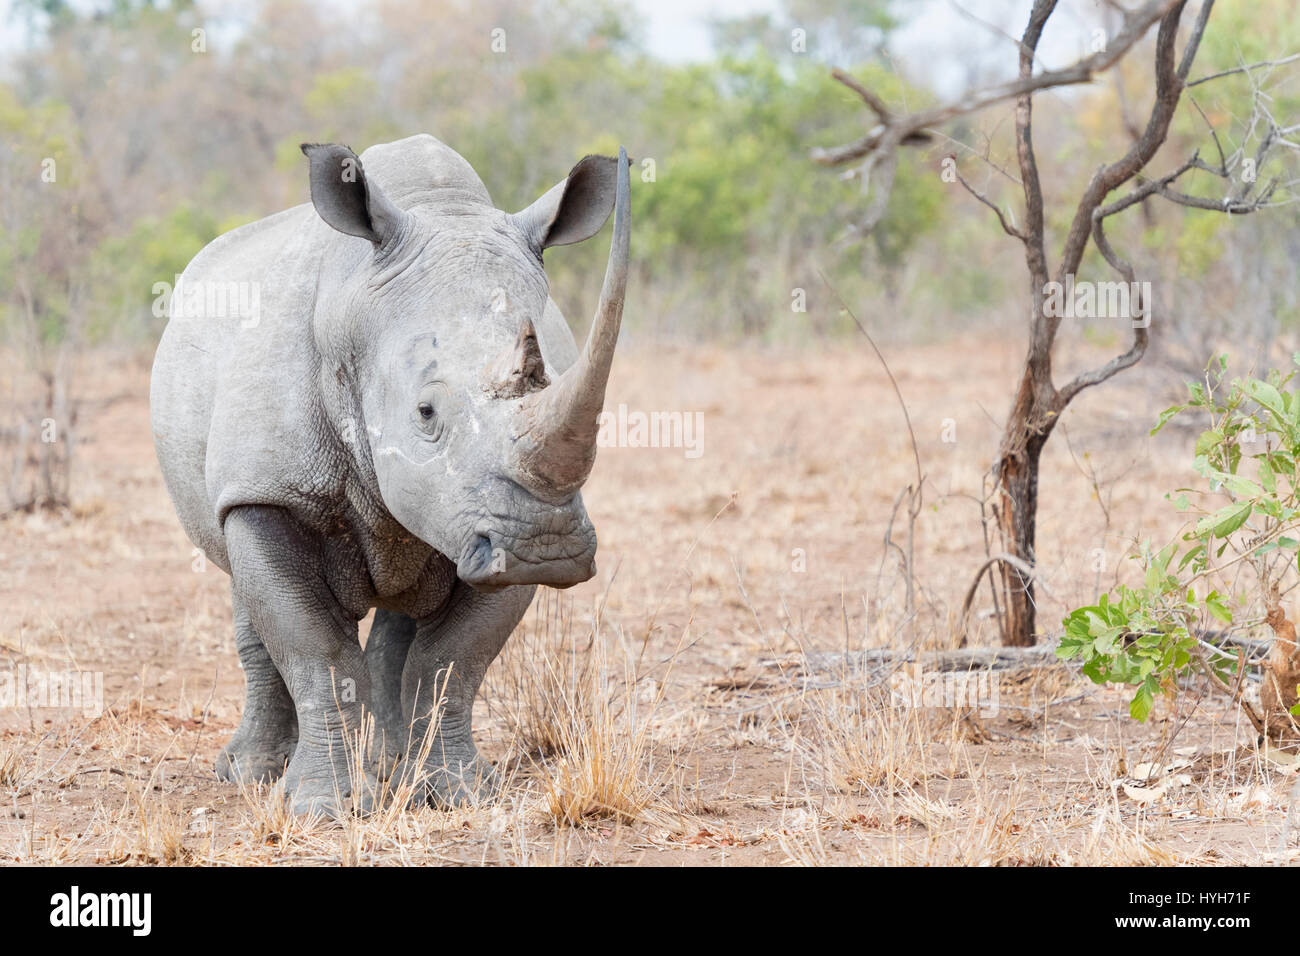 White rhinoceros (Ceratotherium simun) standing on savannah, looking at camera, Kruger National Park, South Africa Stock Photo